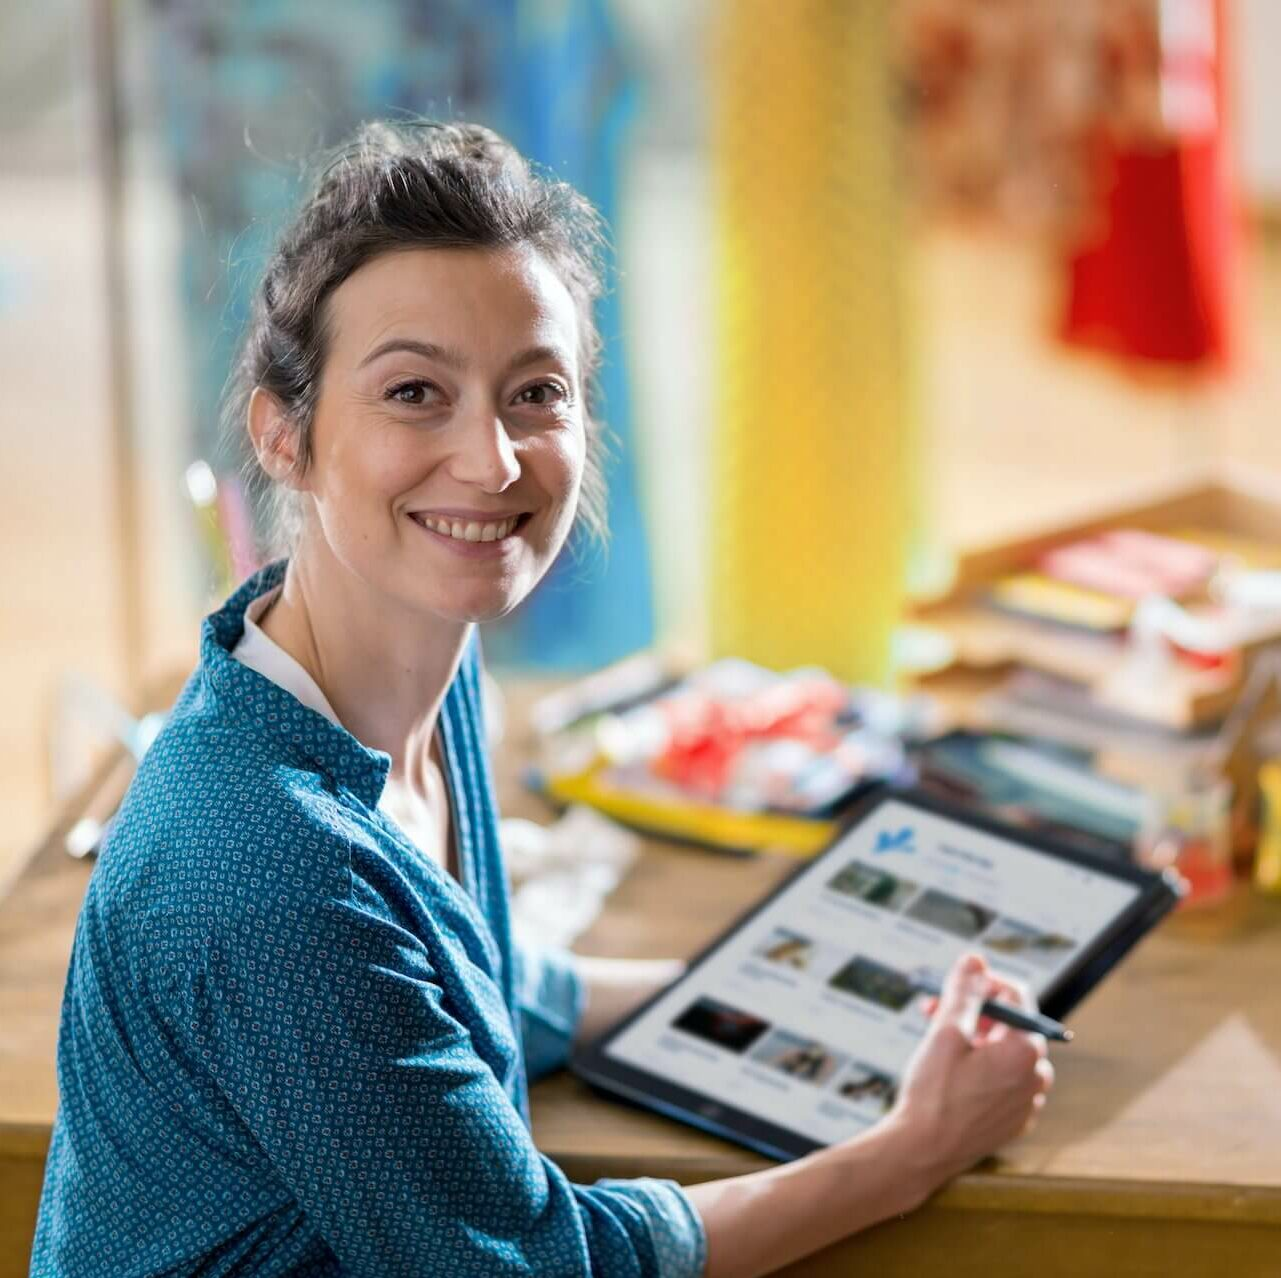 Smiling White woman working on iPad and sitting at desk in painting studio